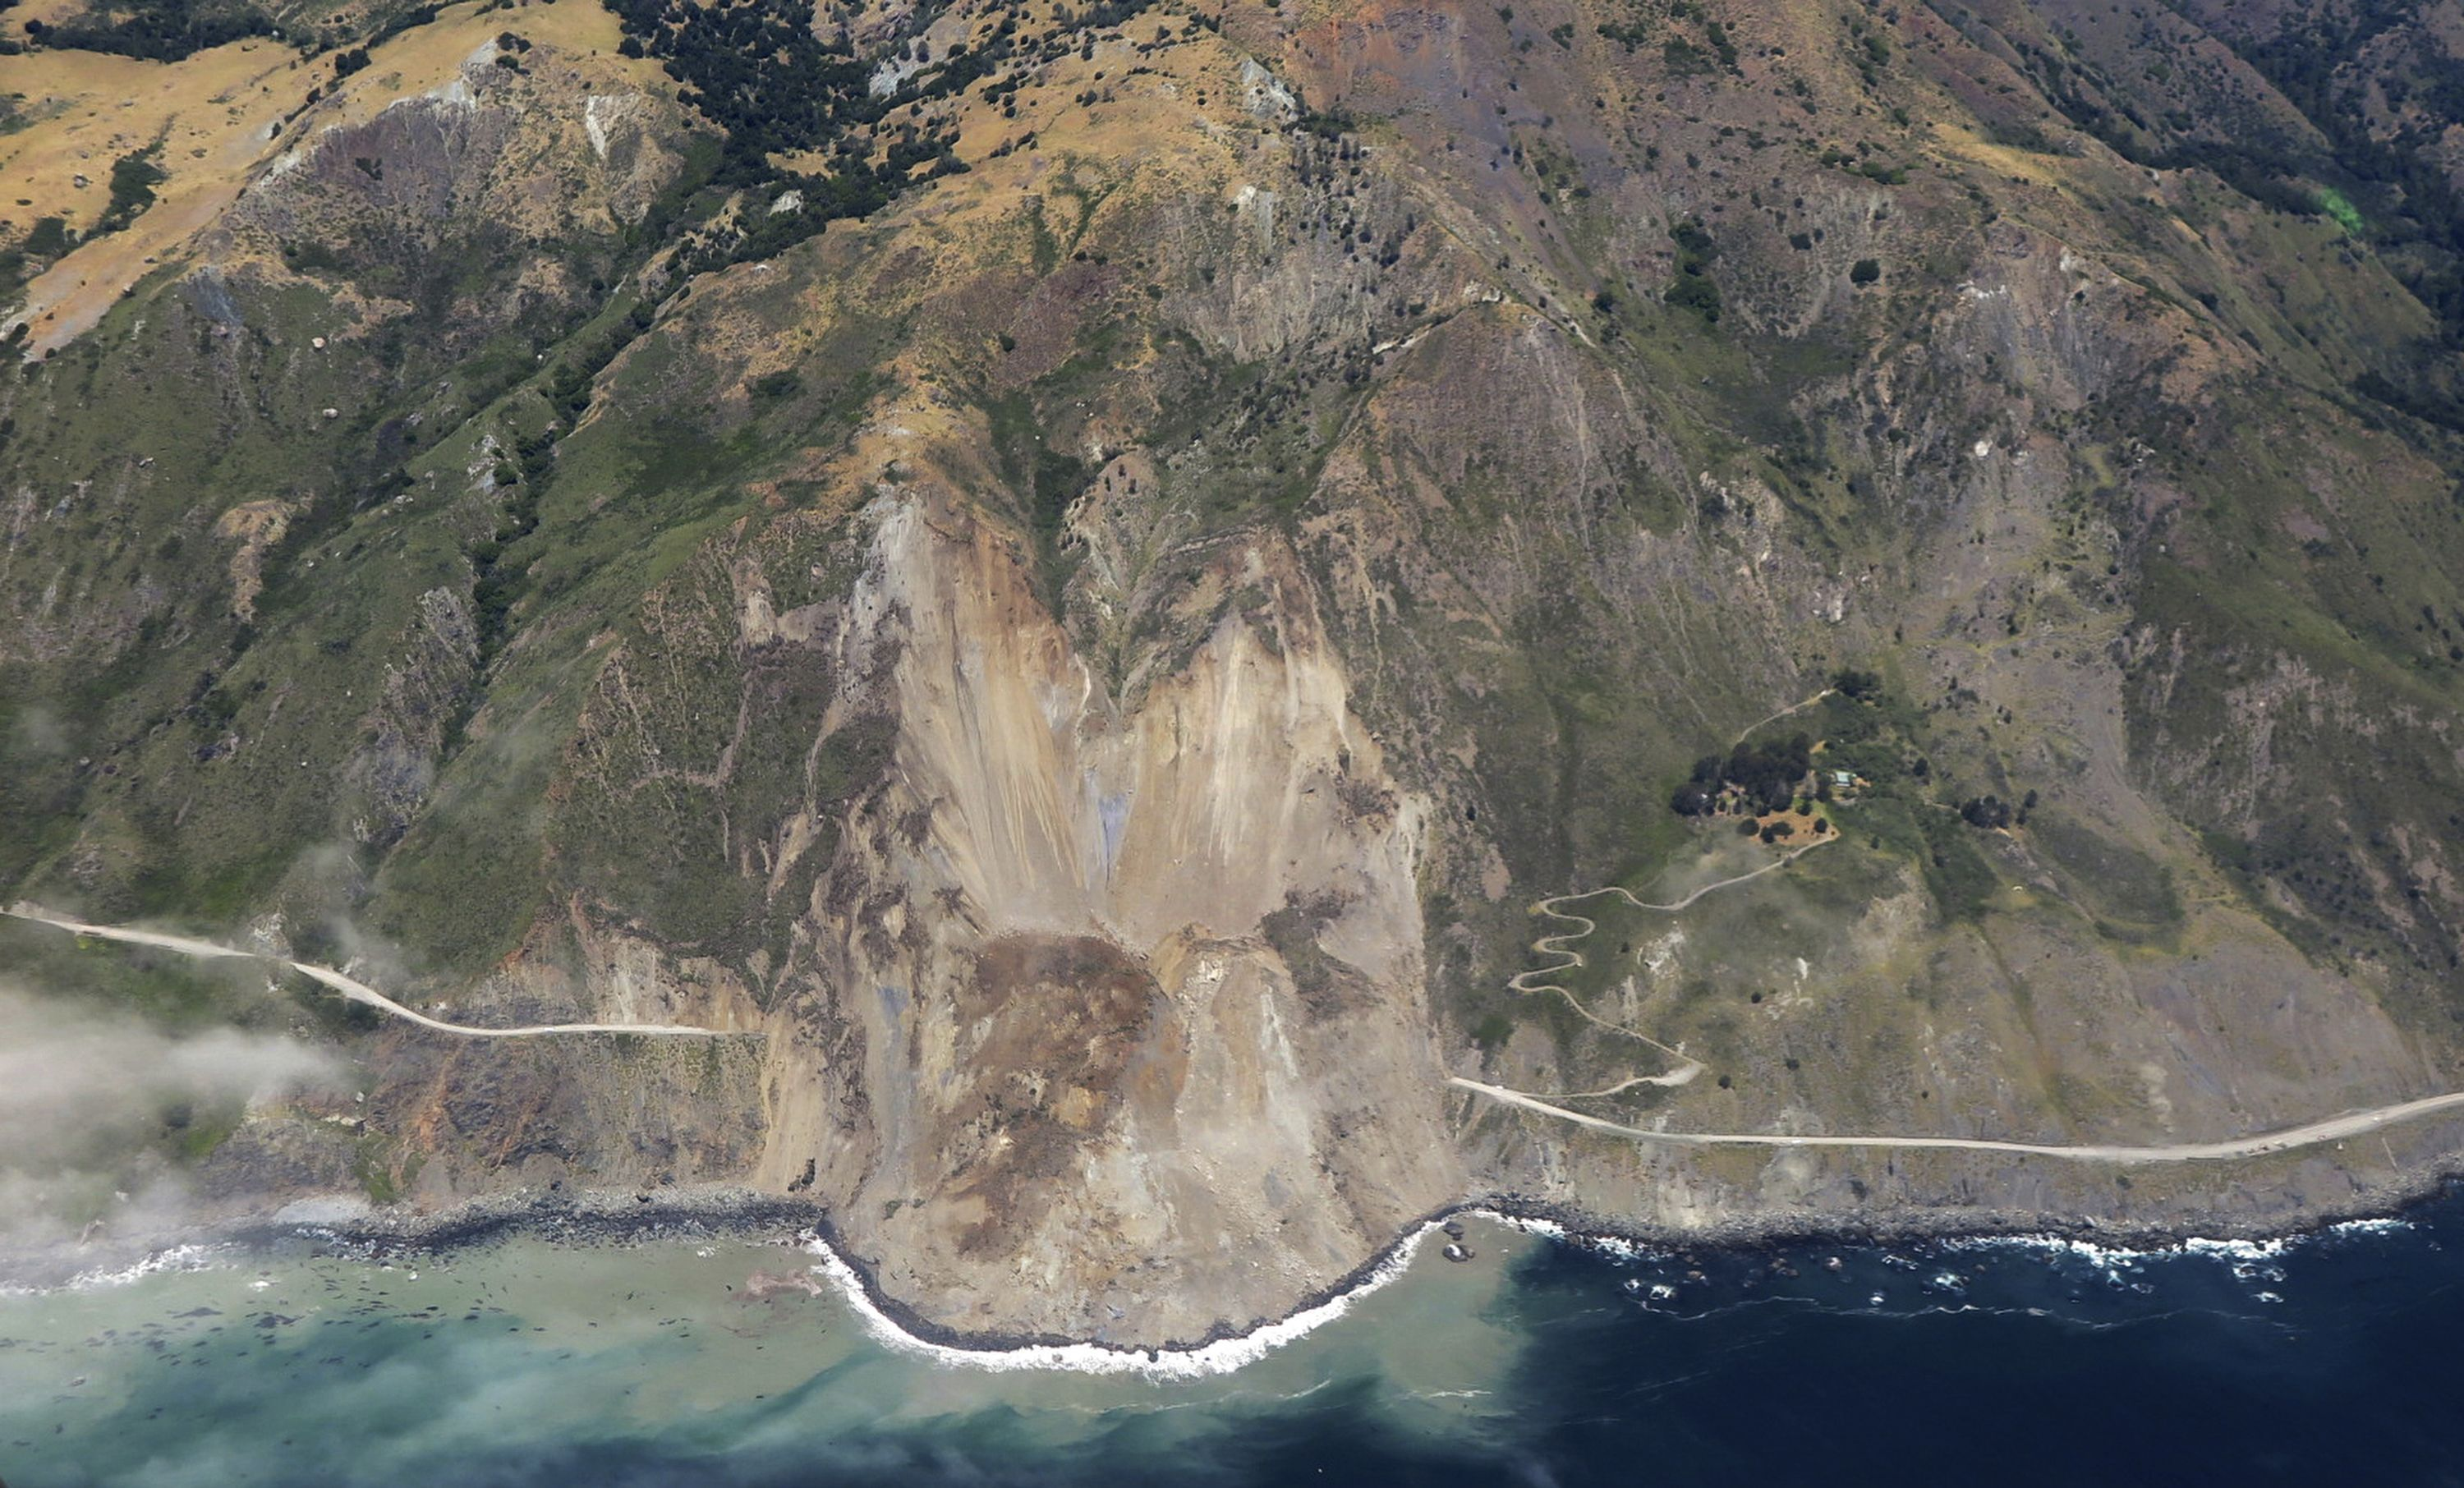 Pacific Coast Highway near Big Sur to reopen in July